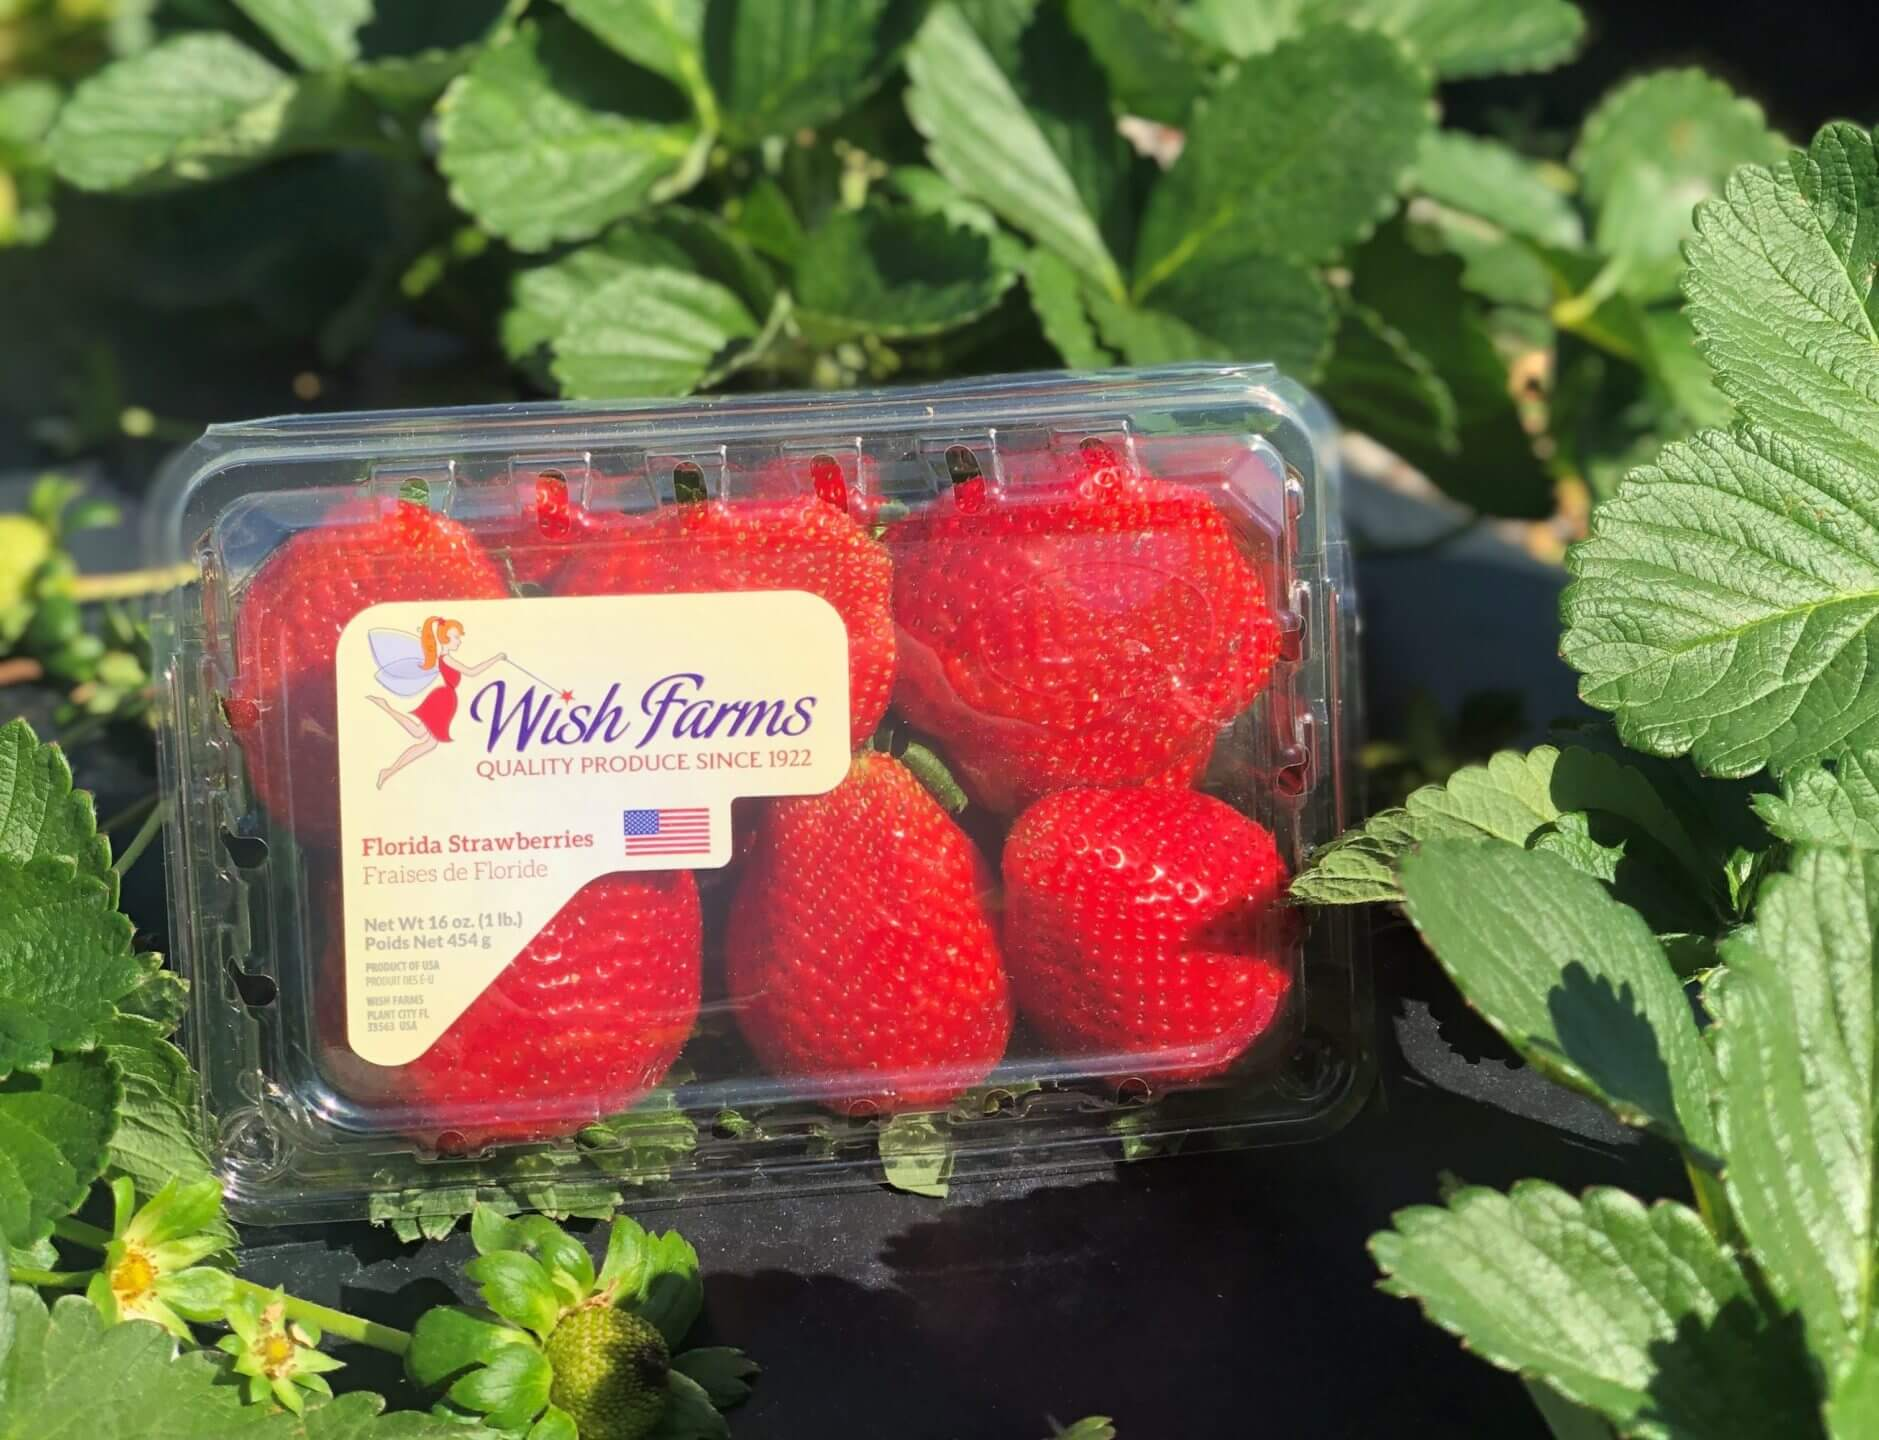 Wish Farms Giant Mega Berries in Field